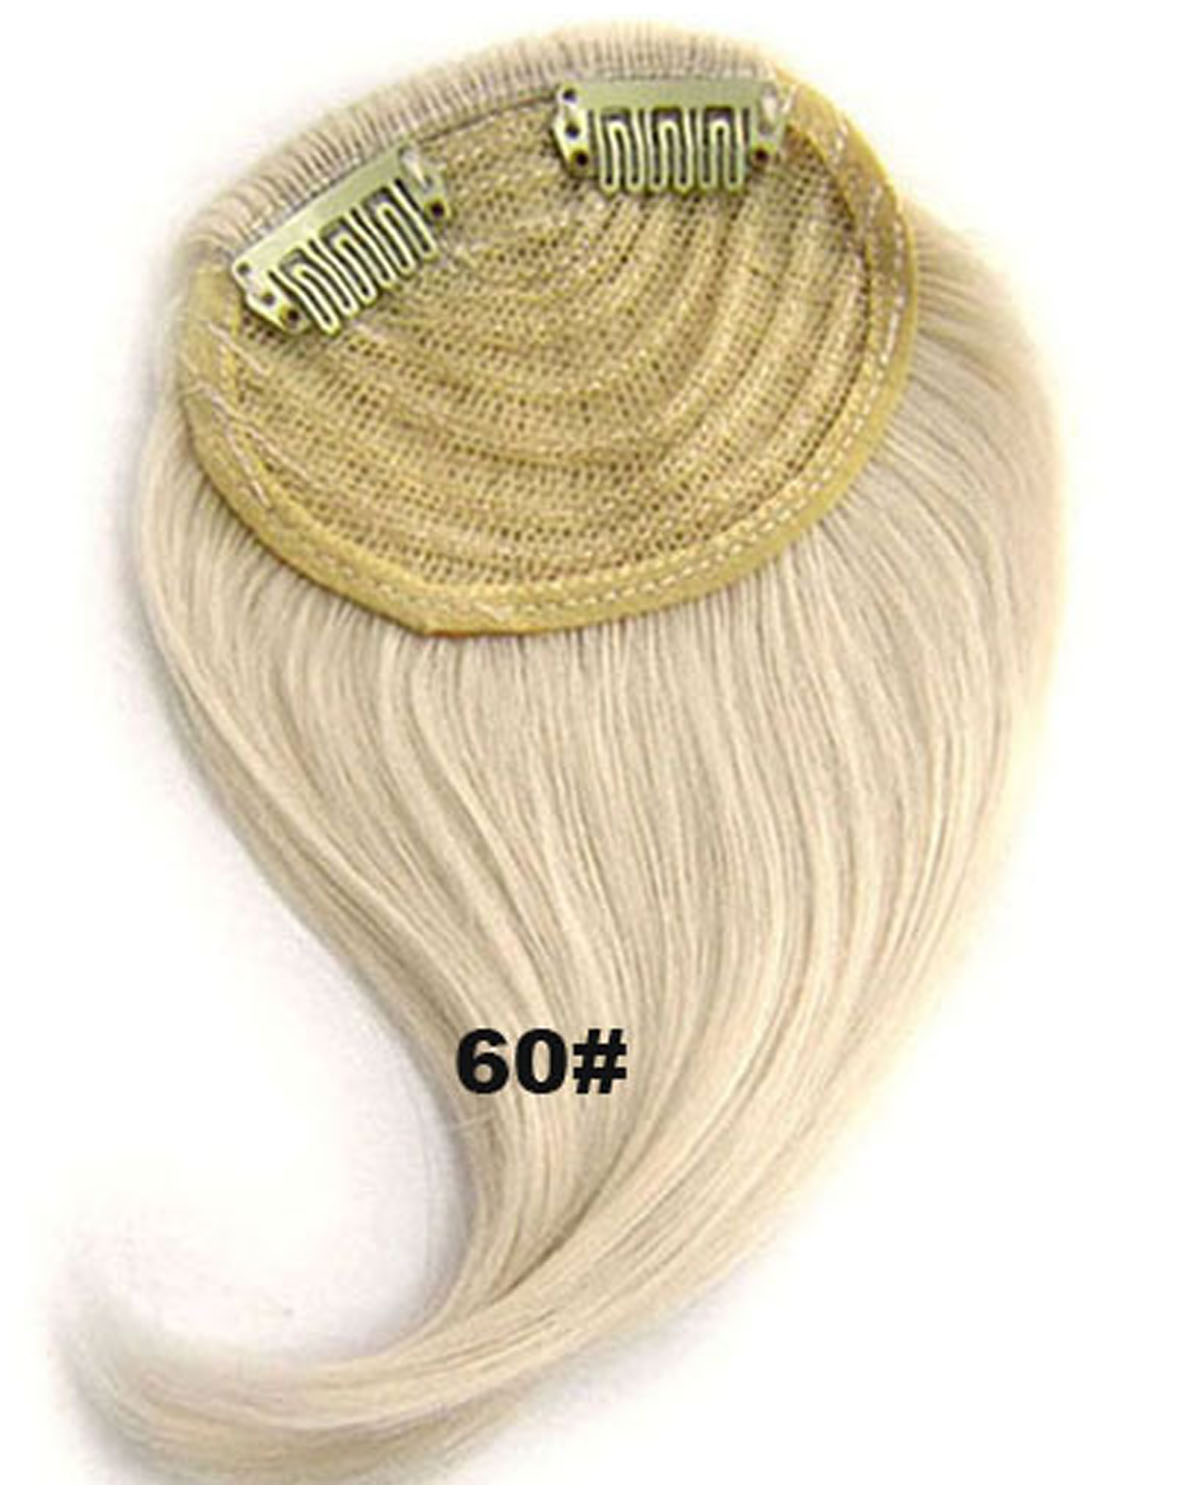 Girls Remarkble Straight Short Bangs Clip in Synthetic Hair Extension Fringe Bangs Hairpiece60#